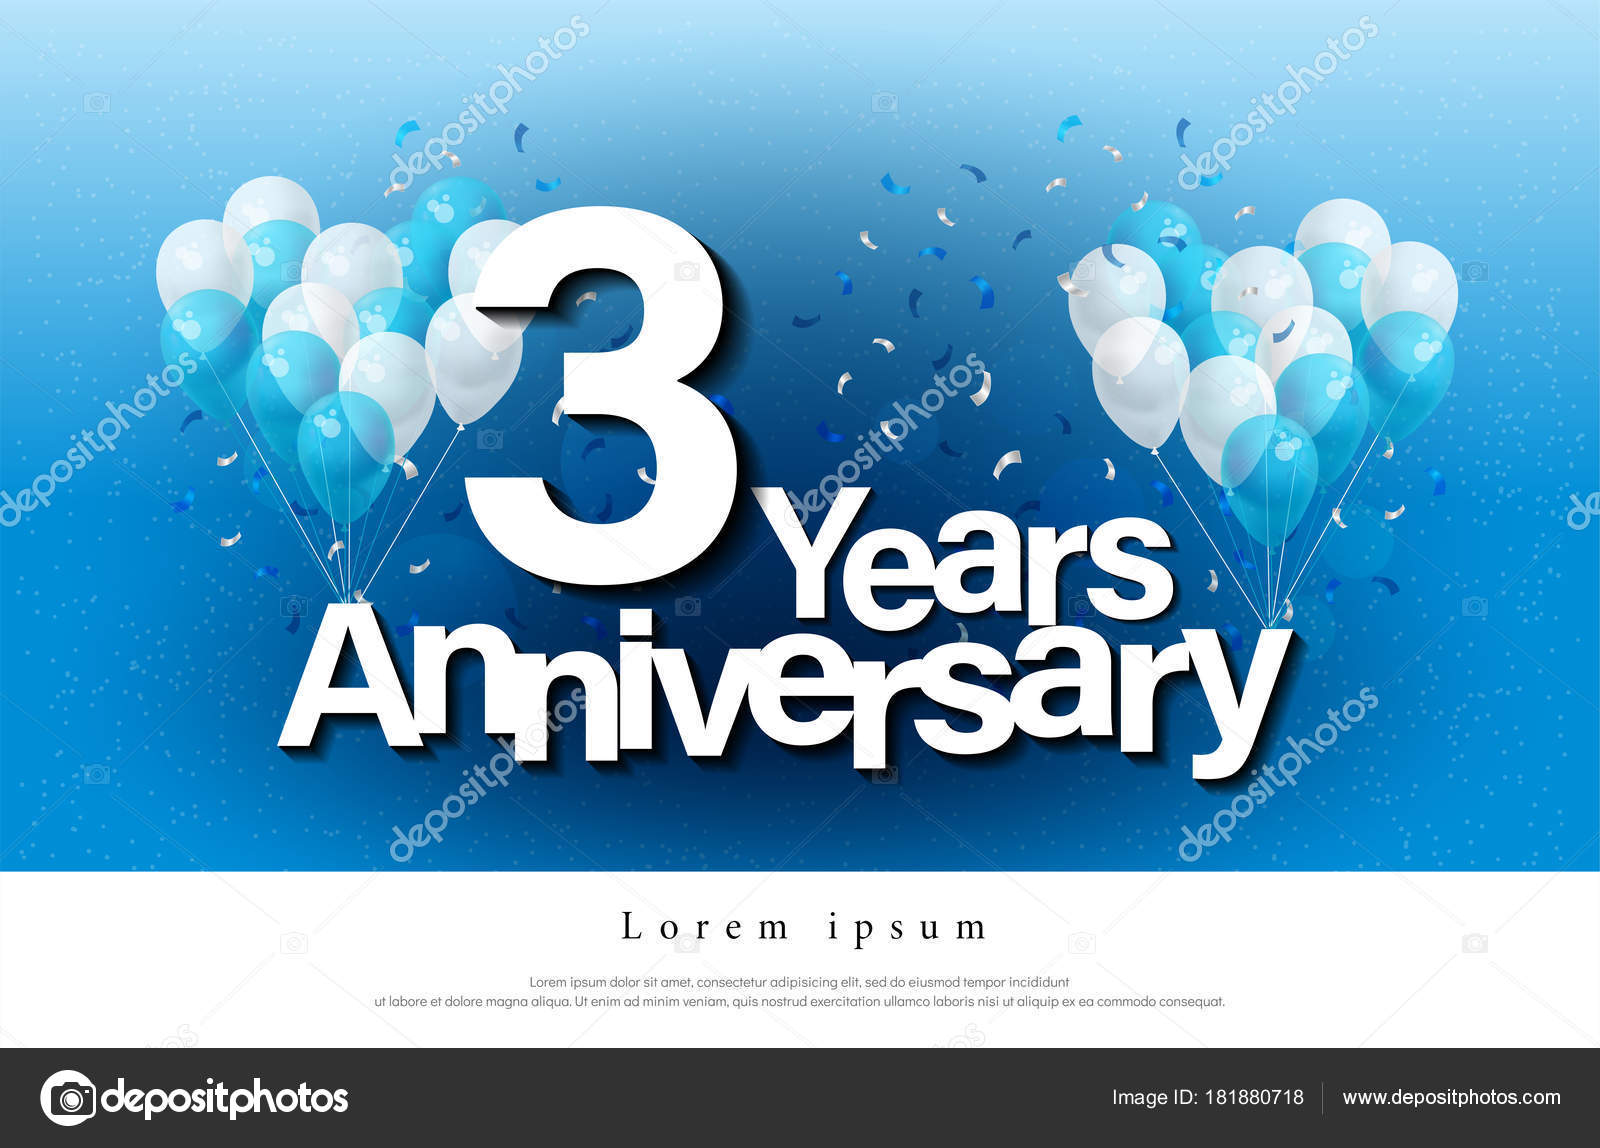 Rd years anniversary greeting card lettering template balloon